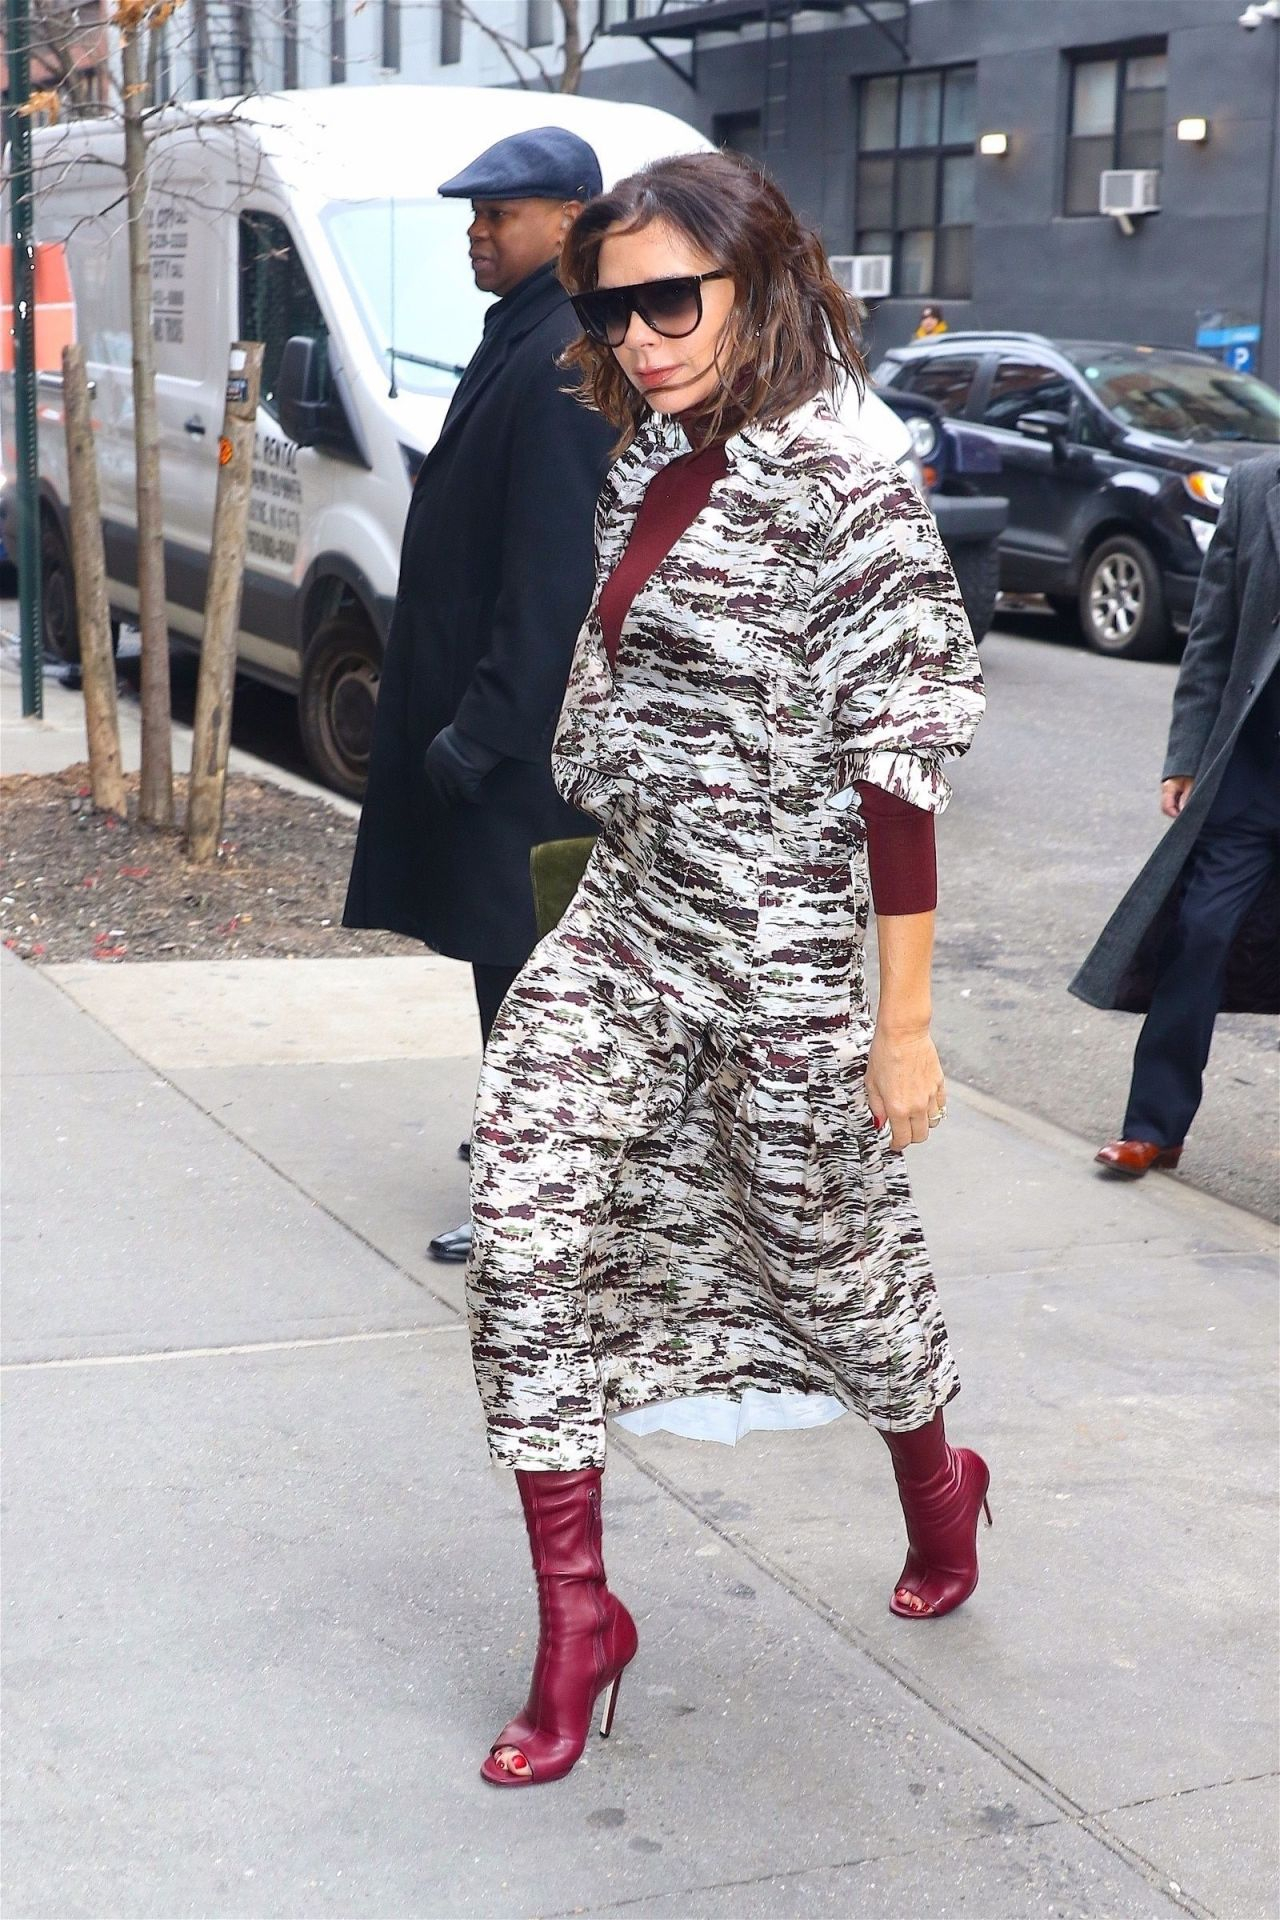 Victoria Beckham is Stylish 01232019